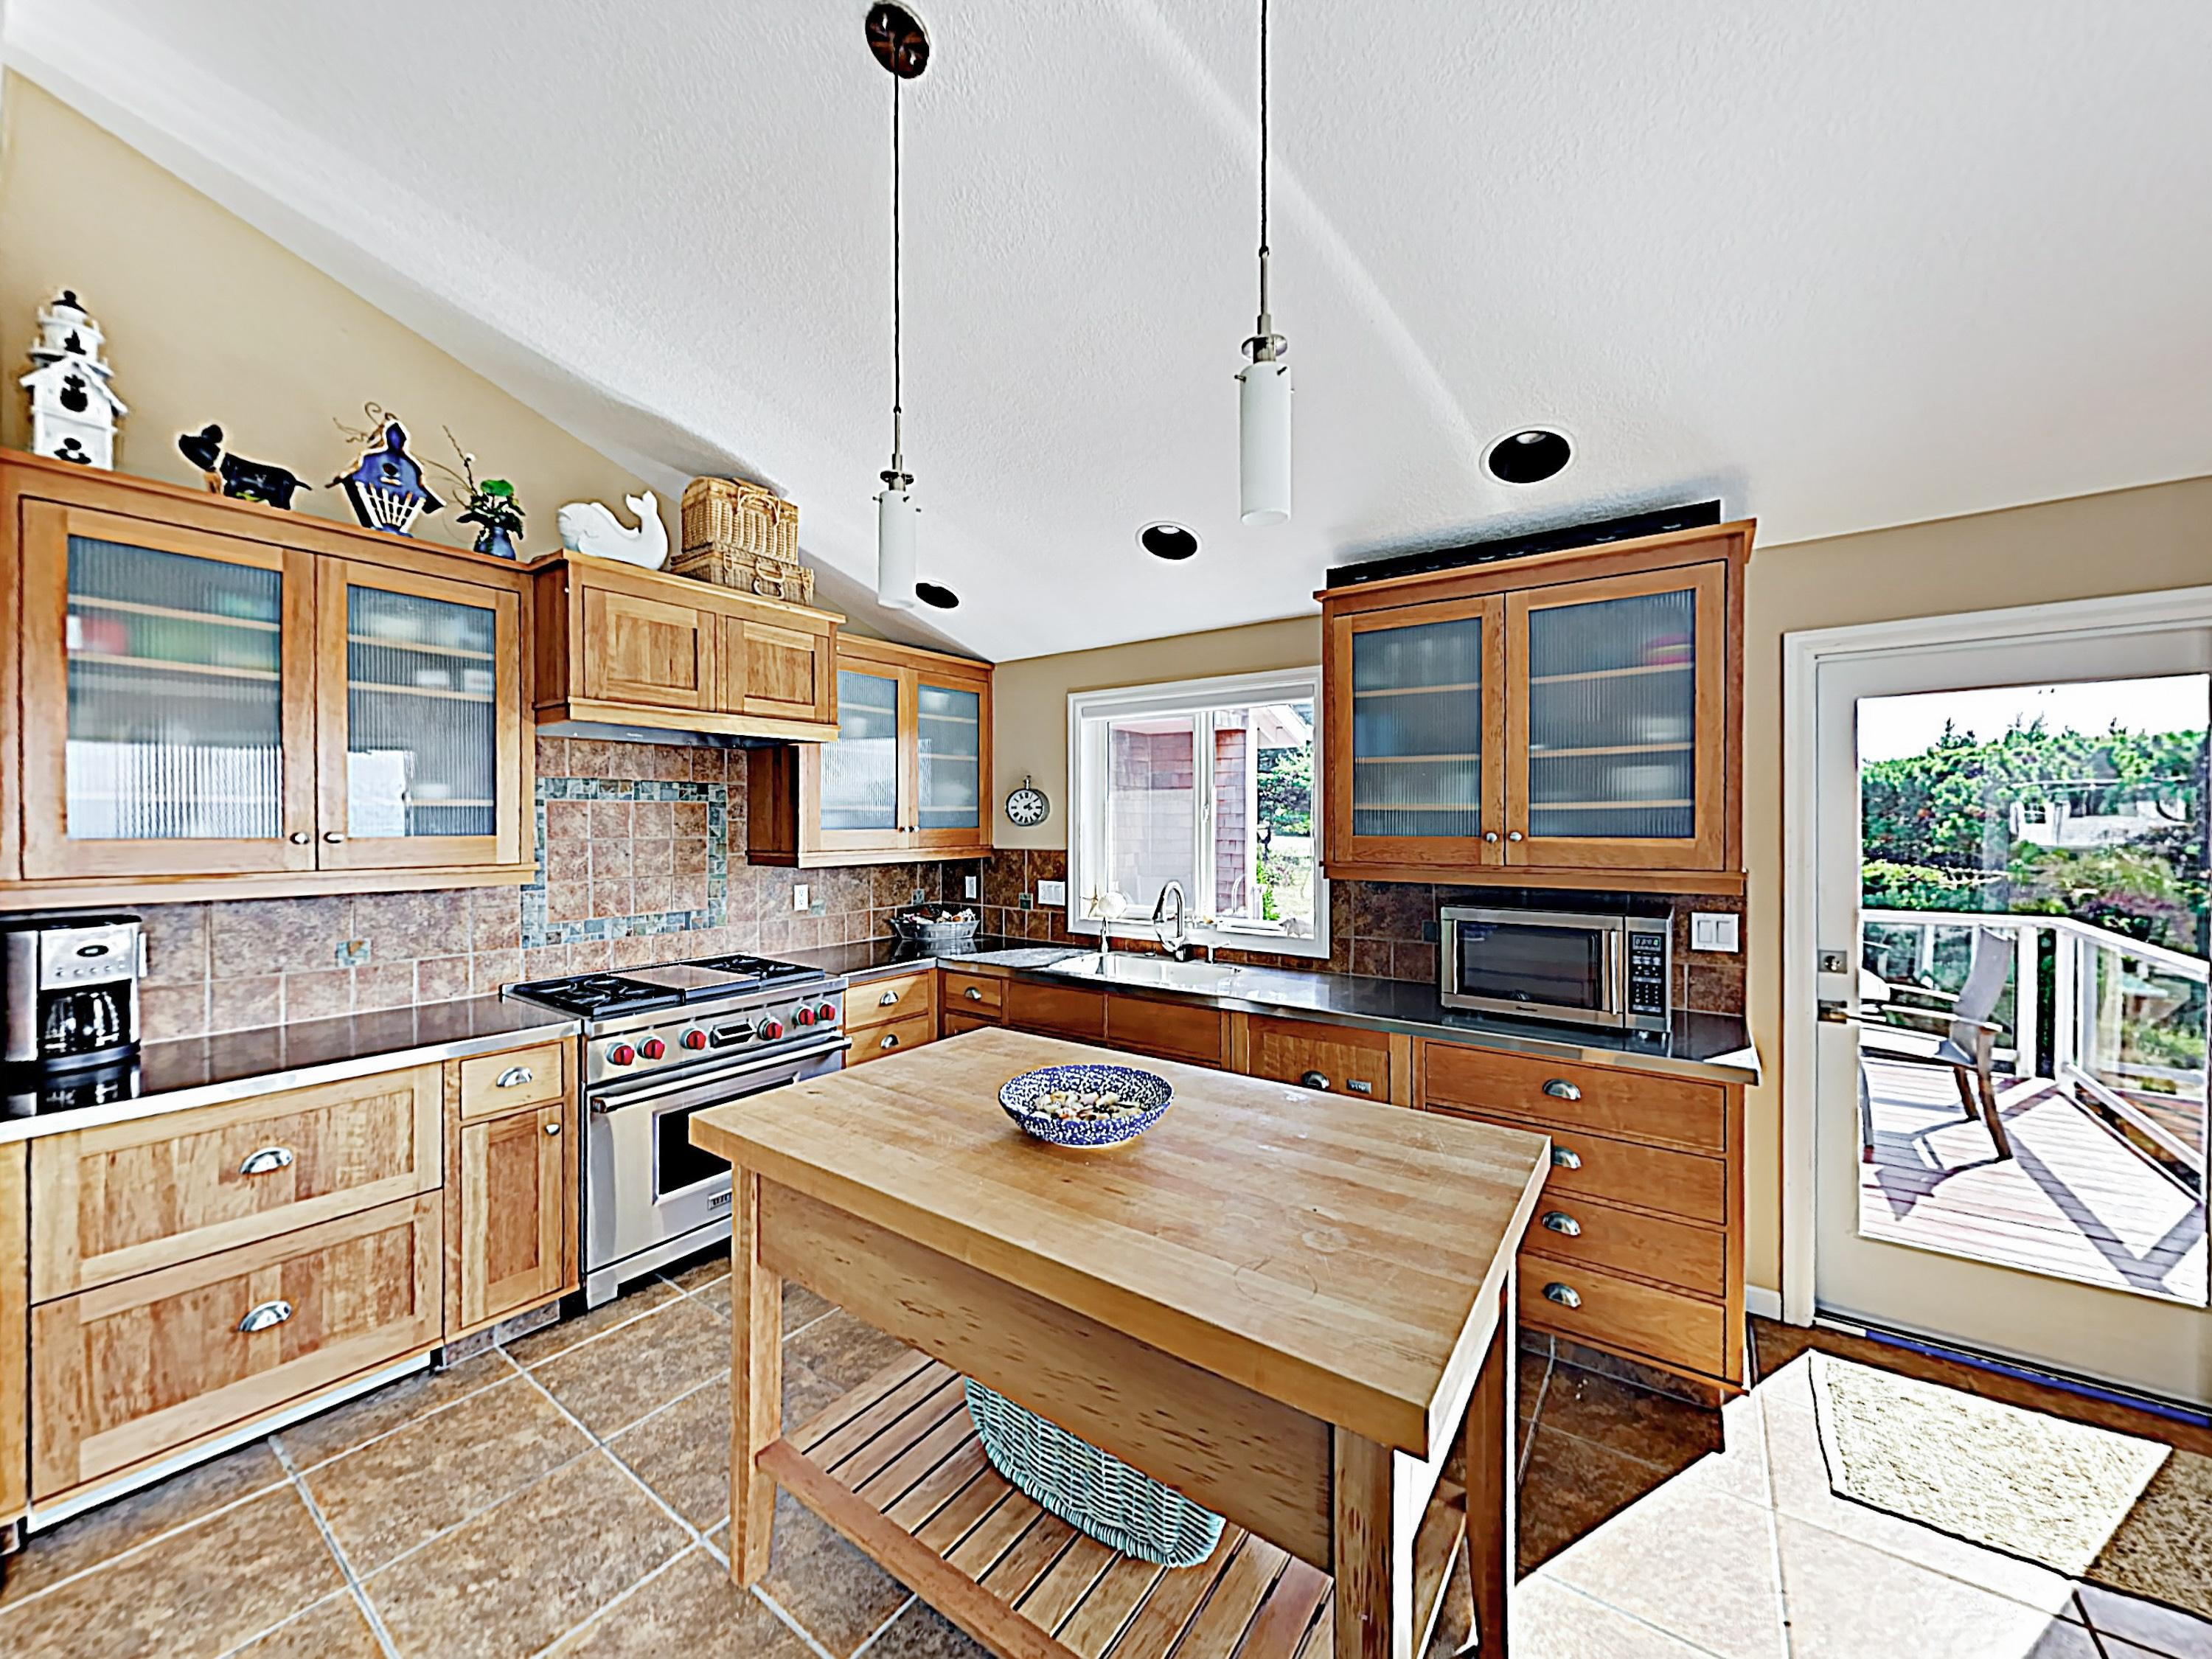 The sparkling kitchen provides stainless steel appliances, including a Wolf range and oven.